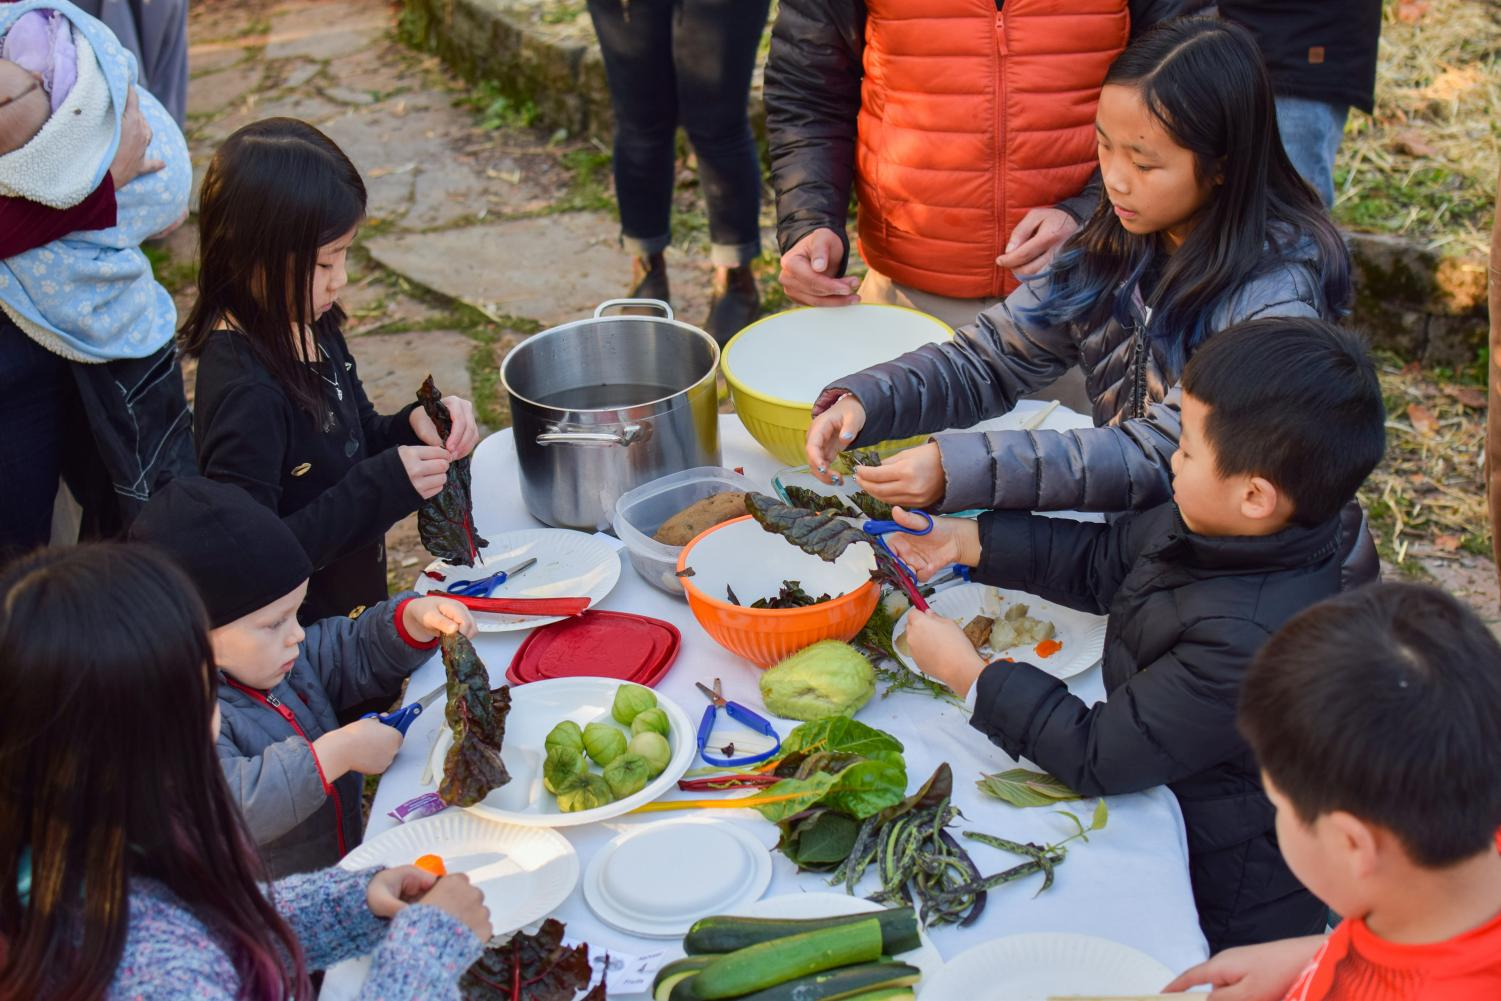 After searching for and harvesting the vegetables, the children learn how to cut and prepare them.